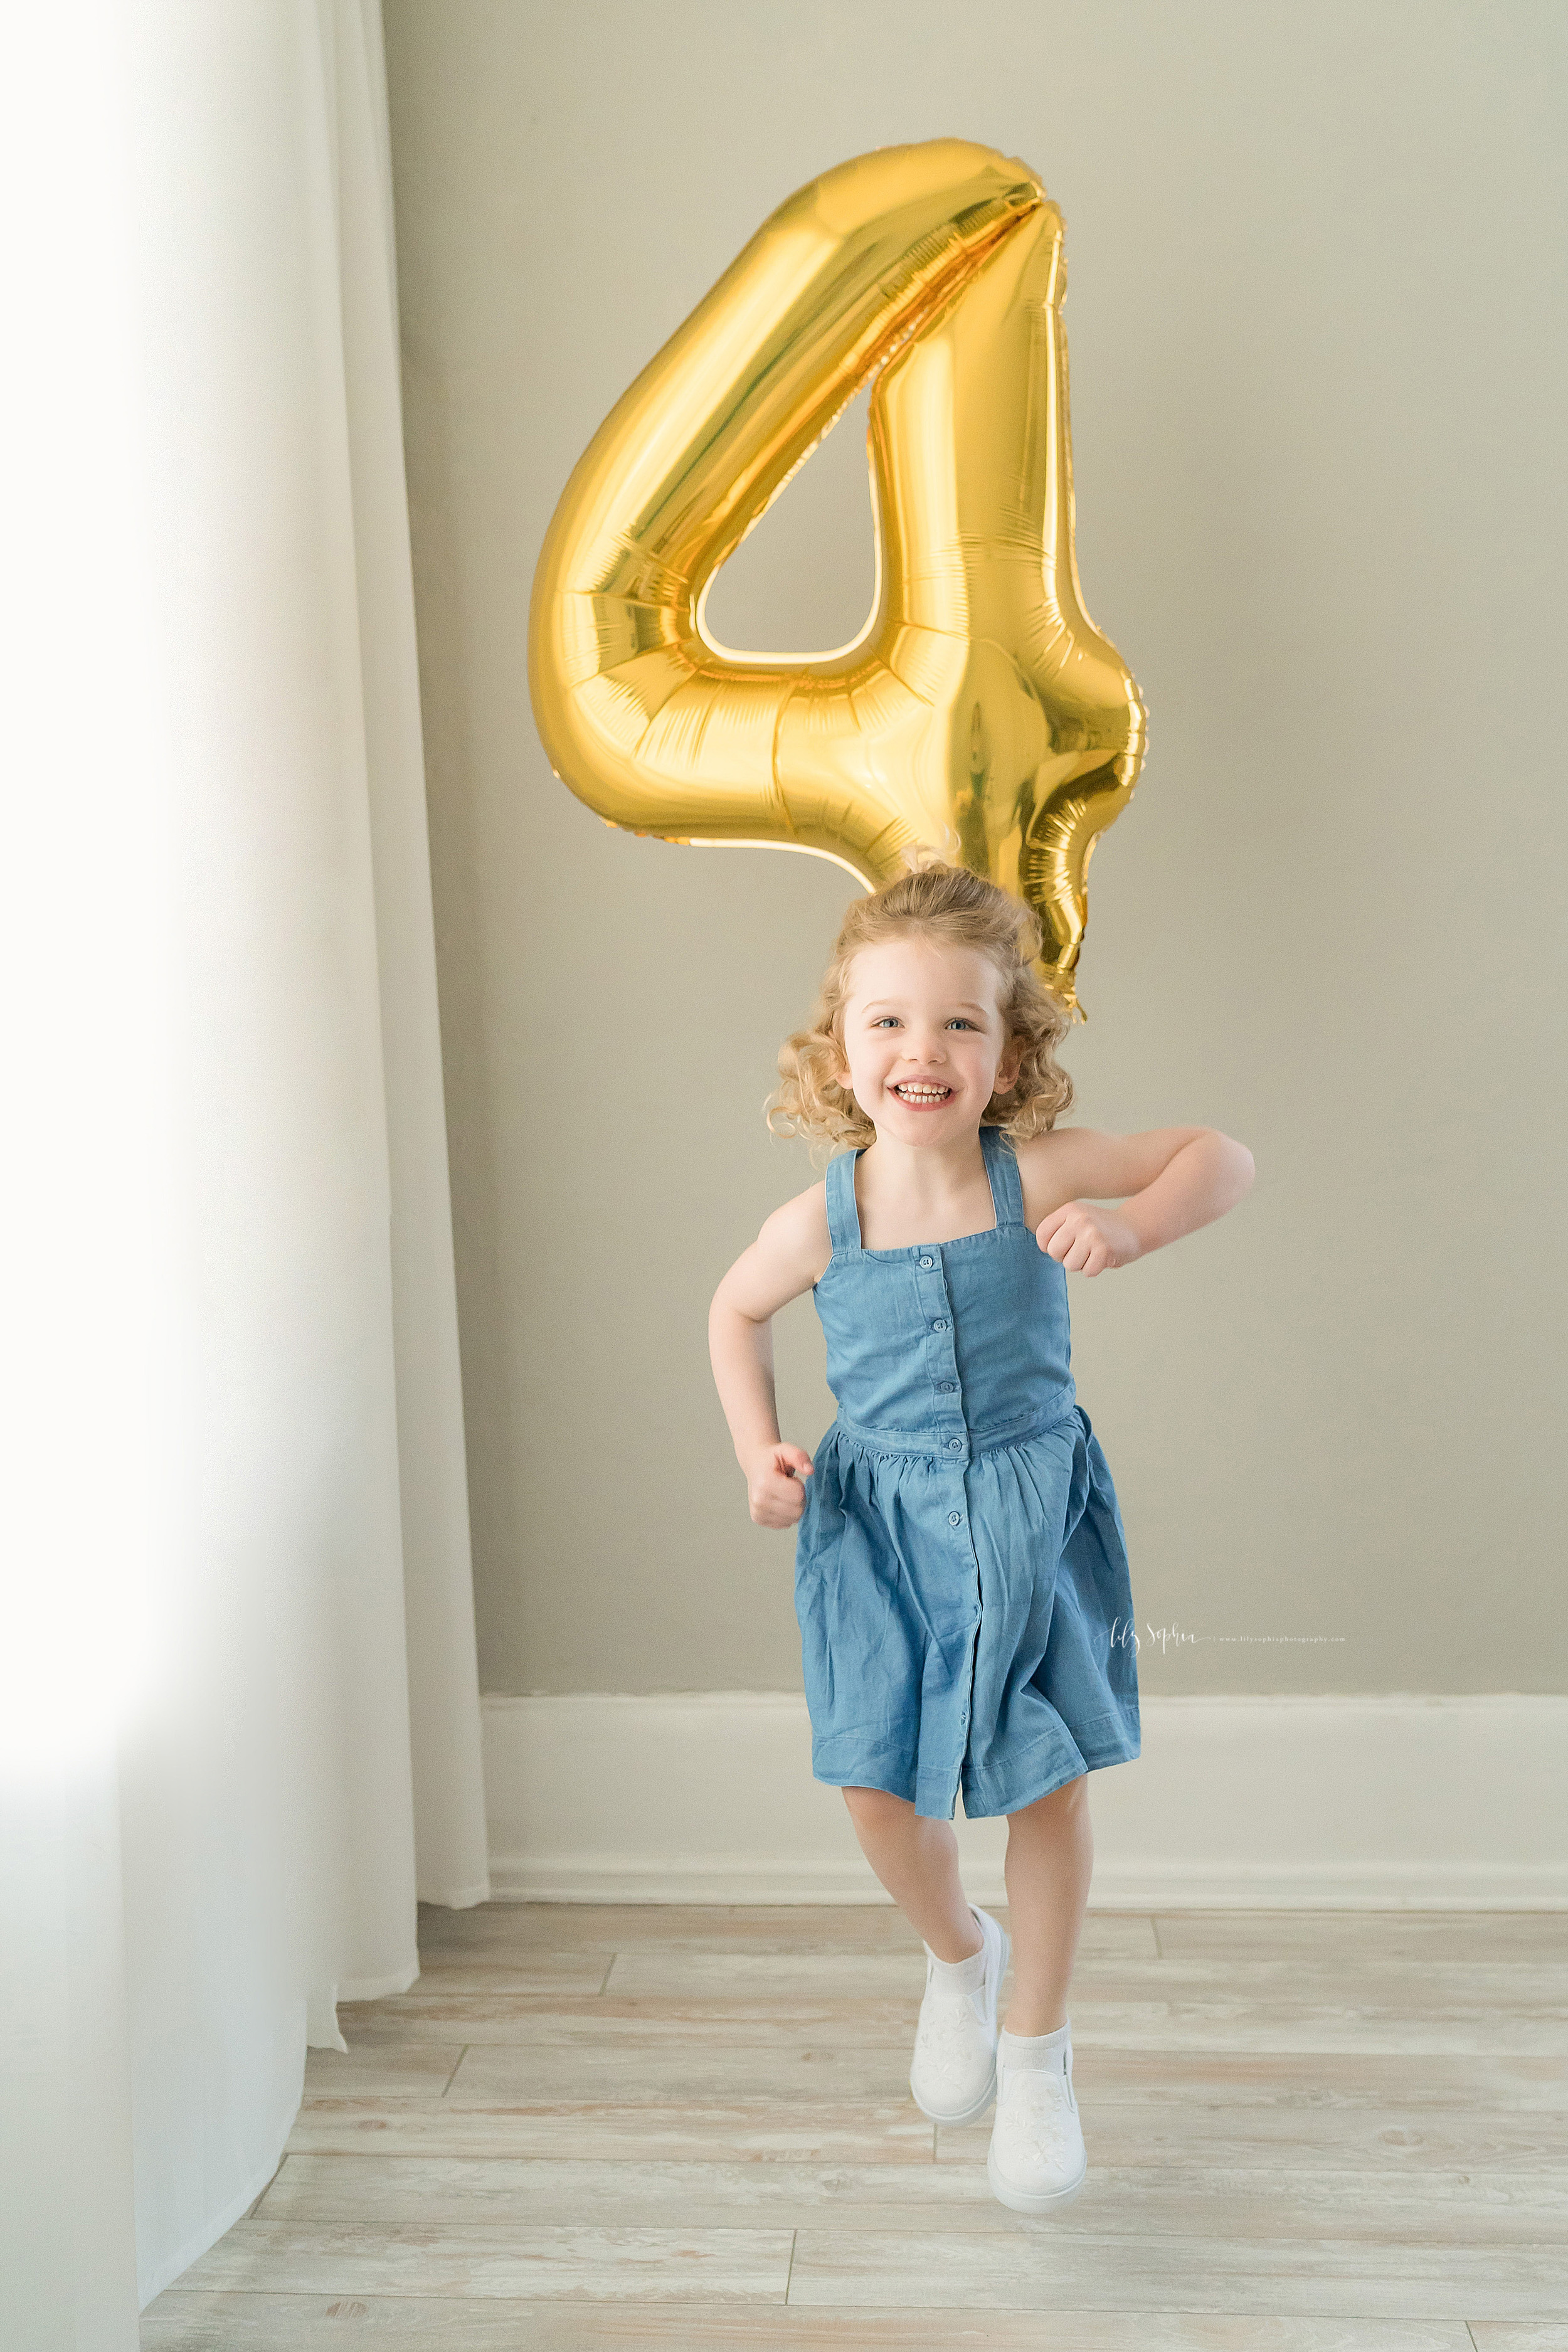 Milestone photo of a happy red-headed Atlanta four year old girl running in a natural light studio while holding a gold number four balloon.